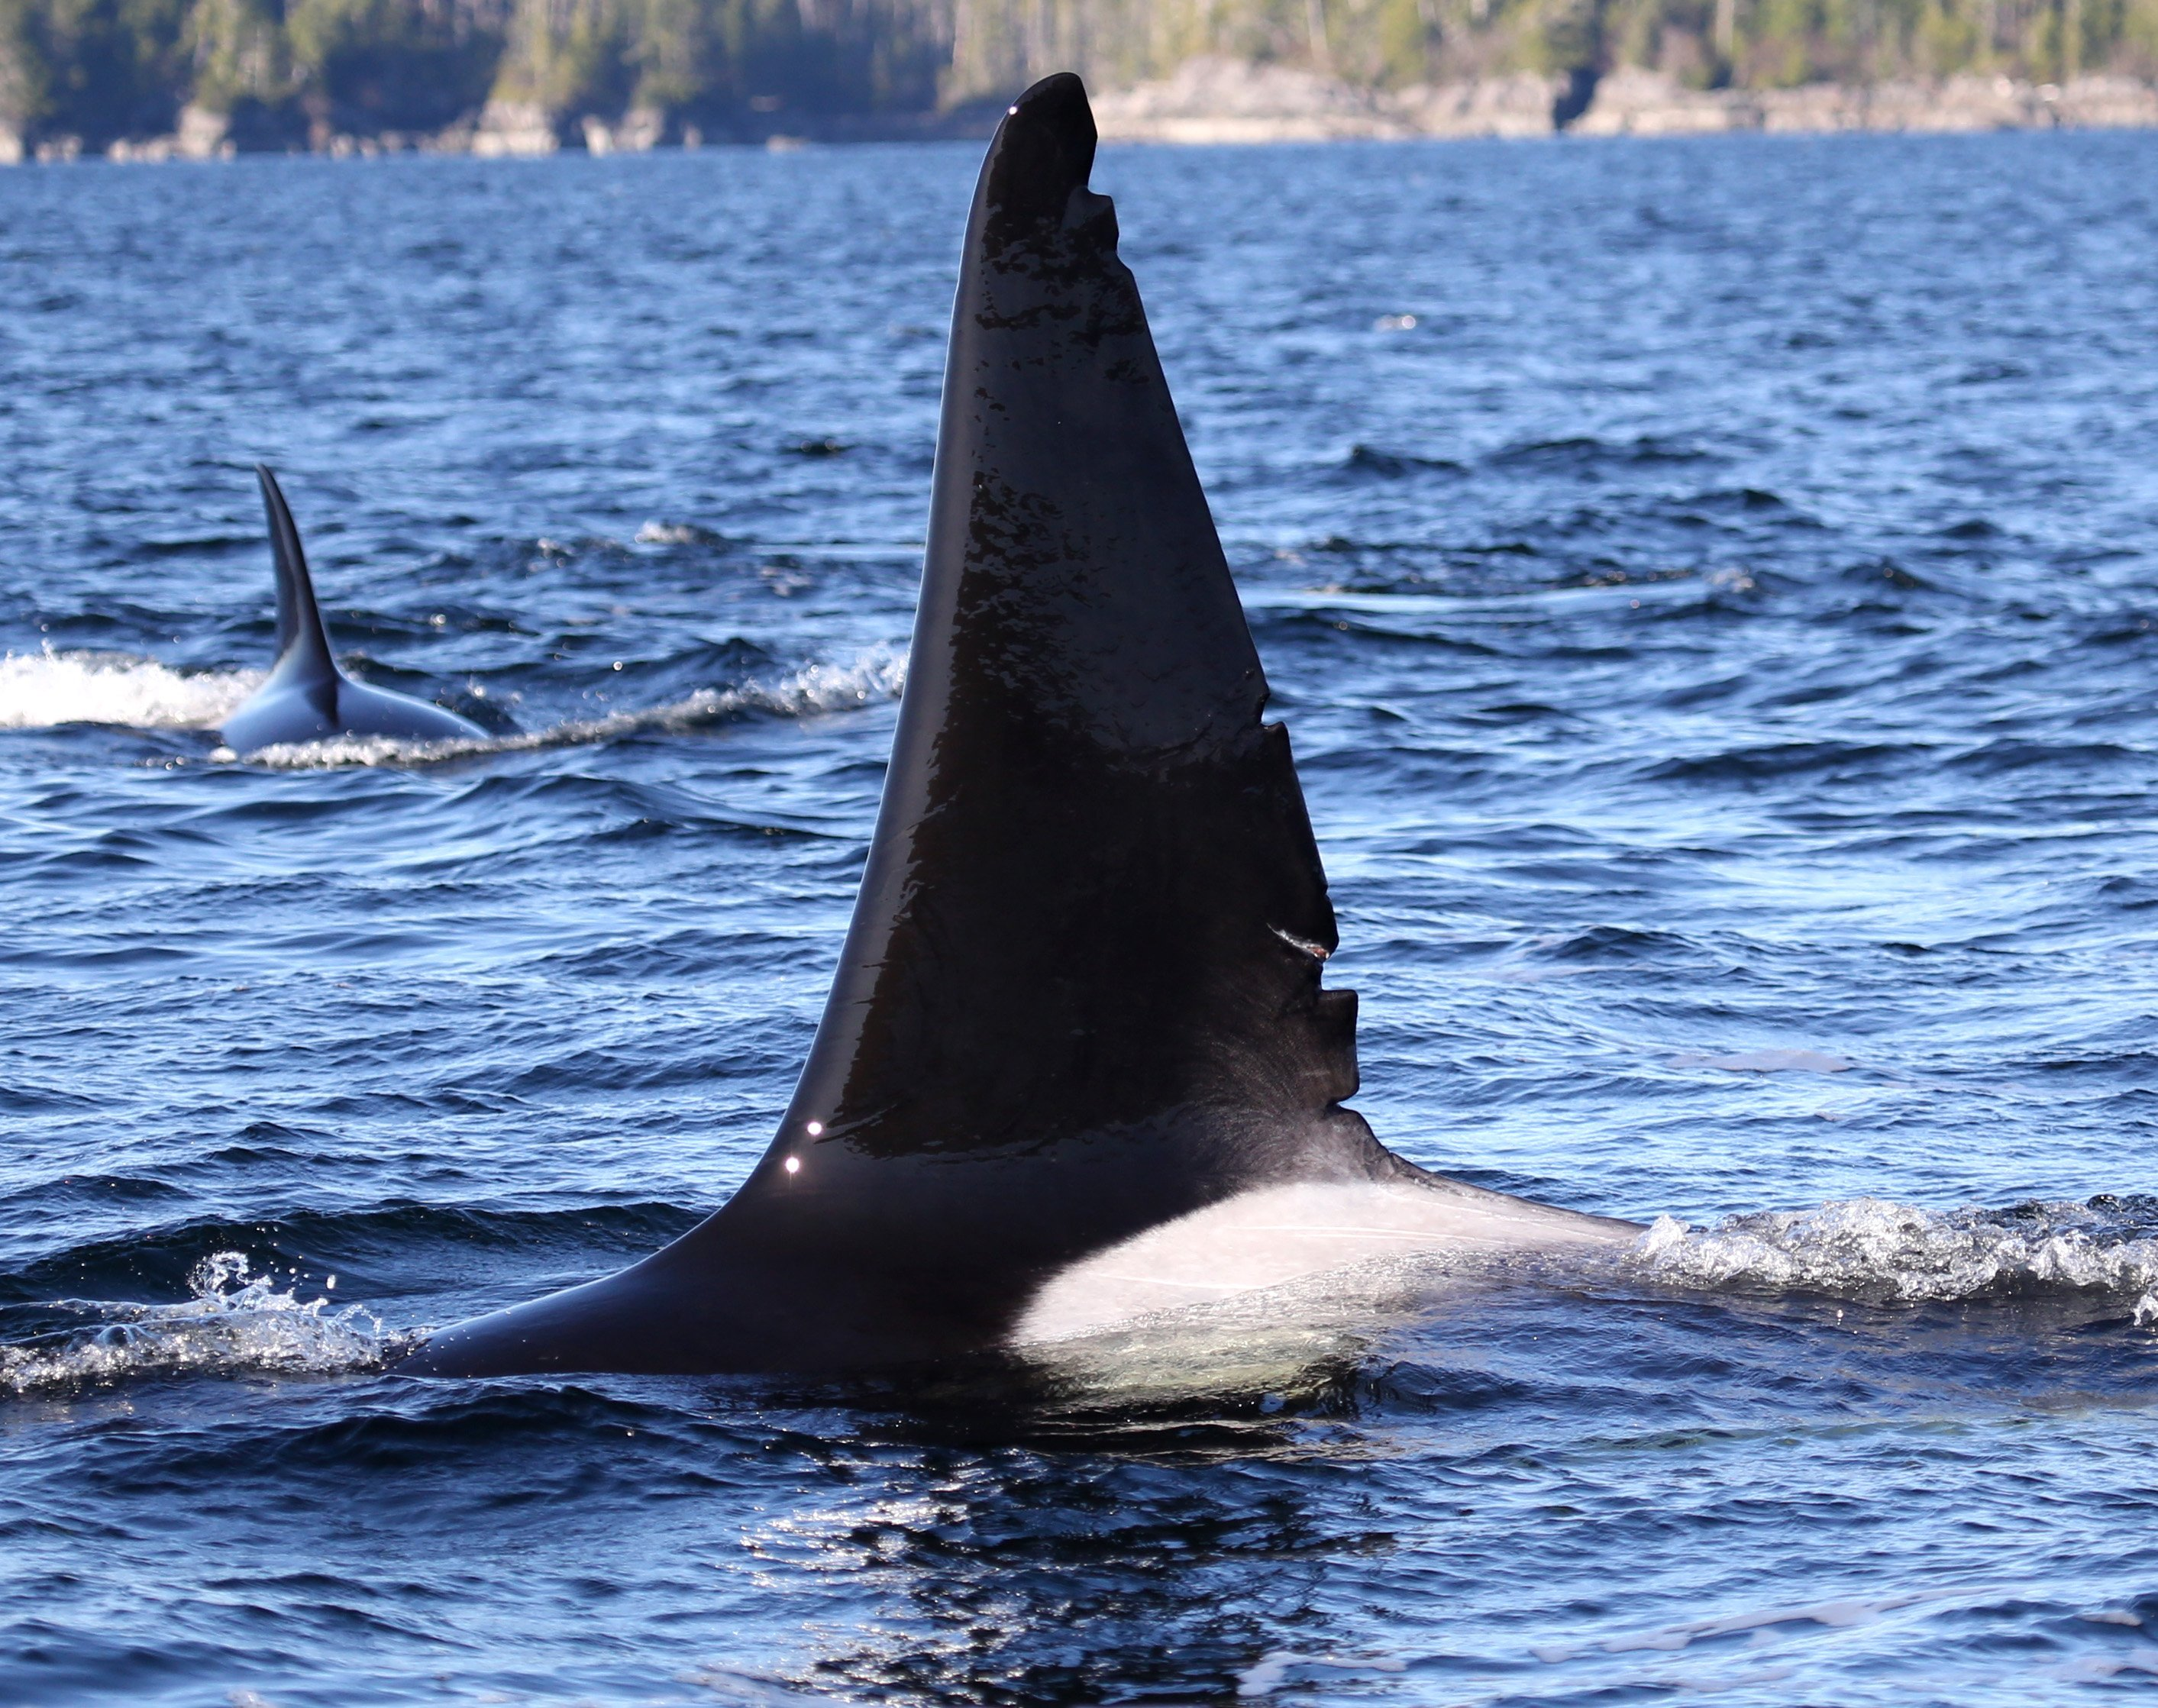 The dorsal fin of the male killer whale. Photo: © Janie Wray